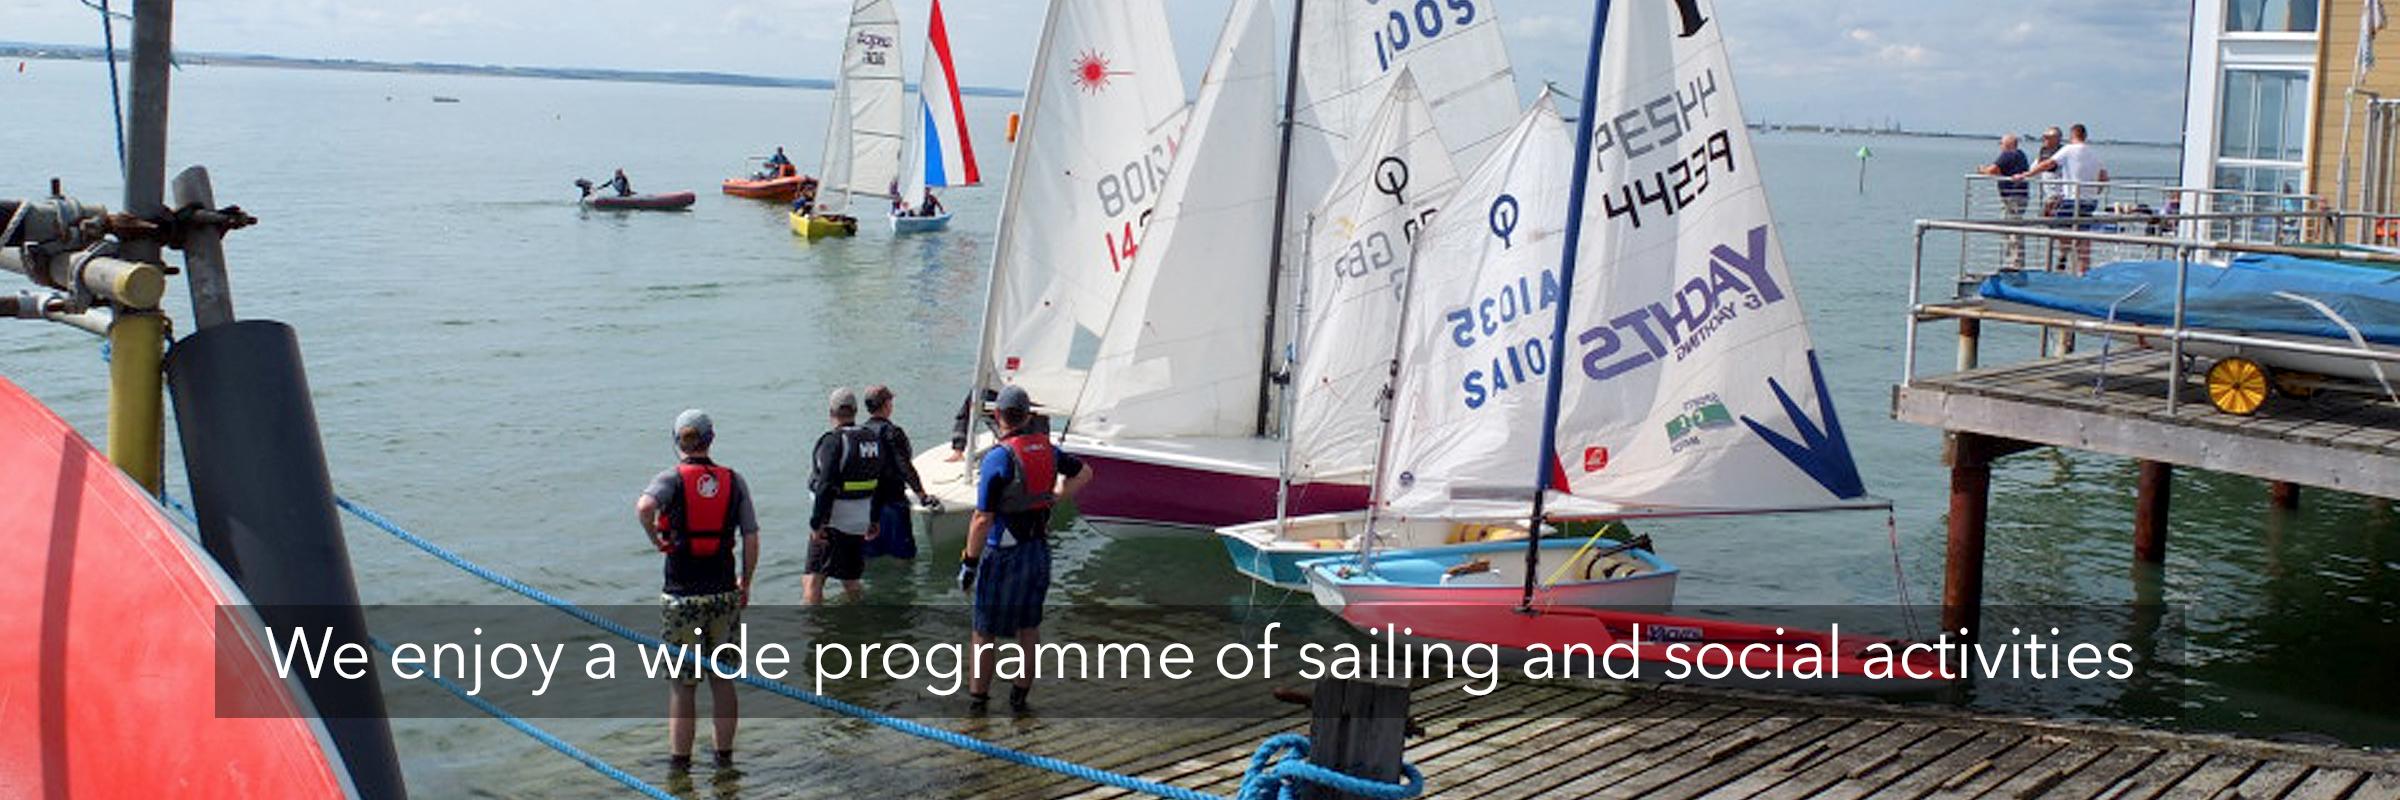 Permalink to:We enjoy a wide programme of sailing and social activities